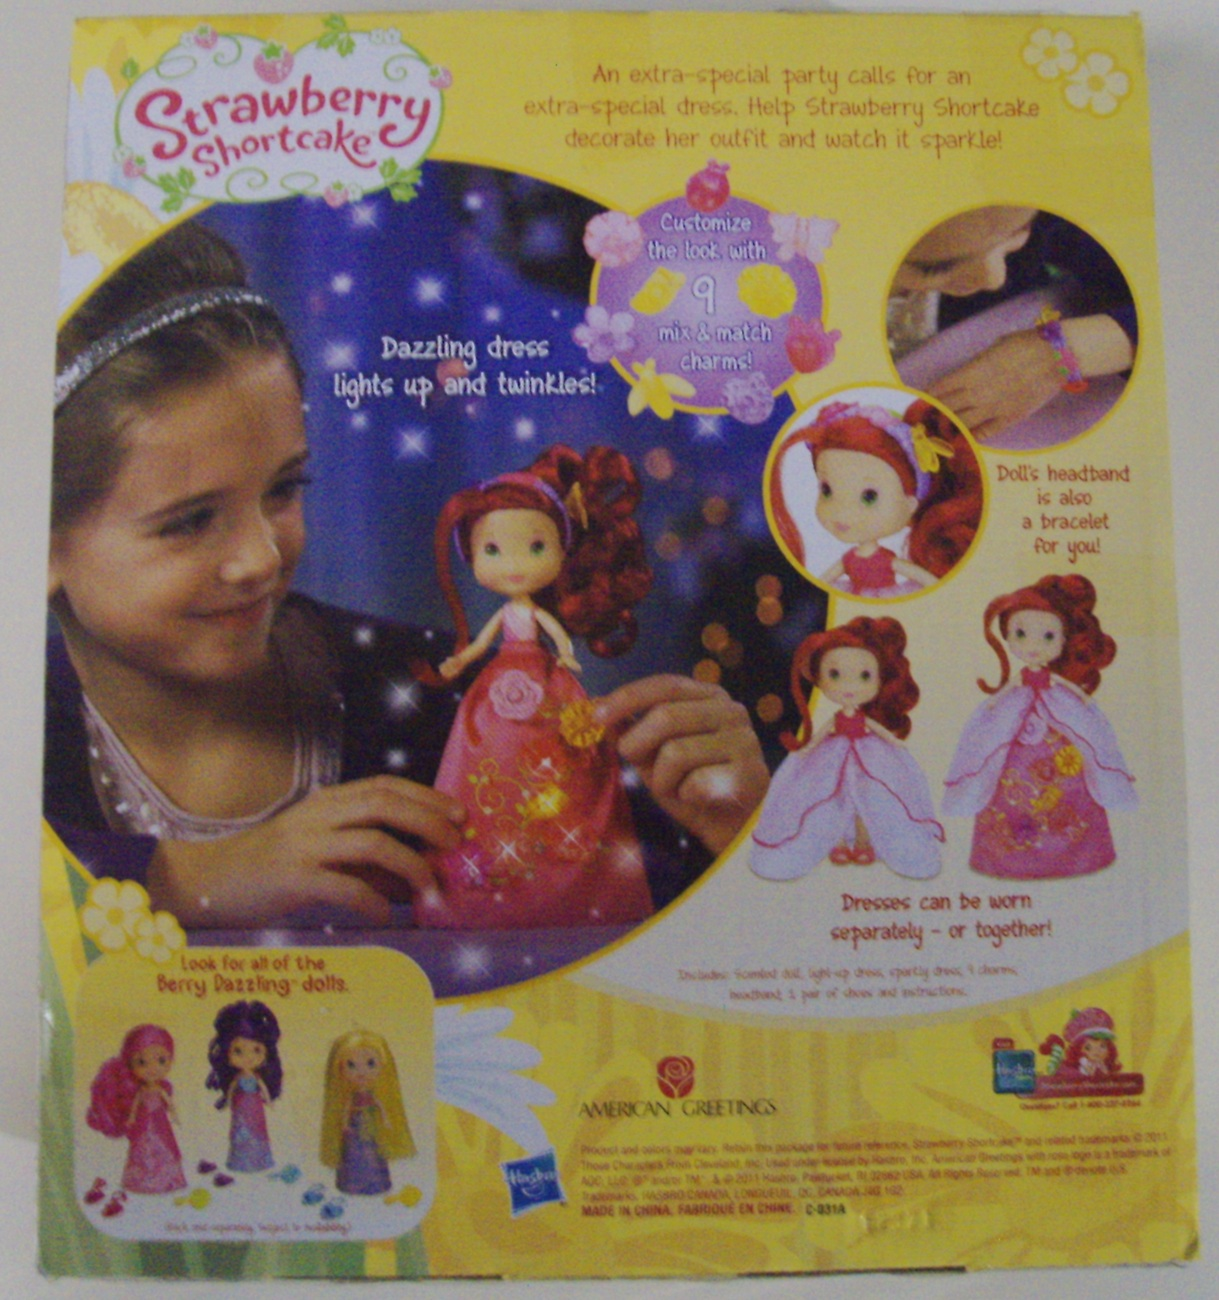 Strawberry Shortcake Berry Sparkling Charms doll - New